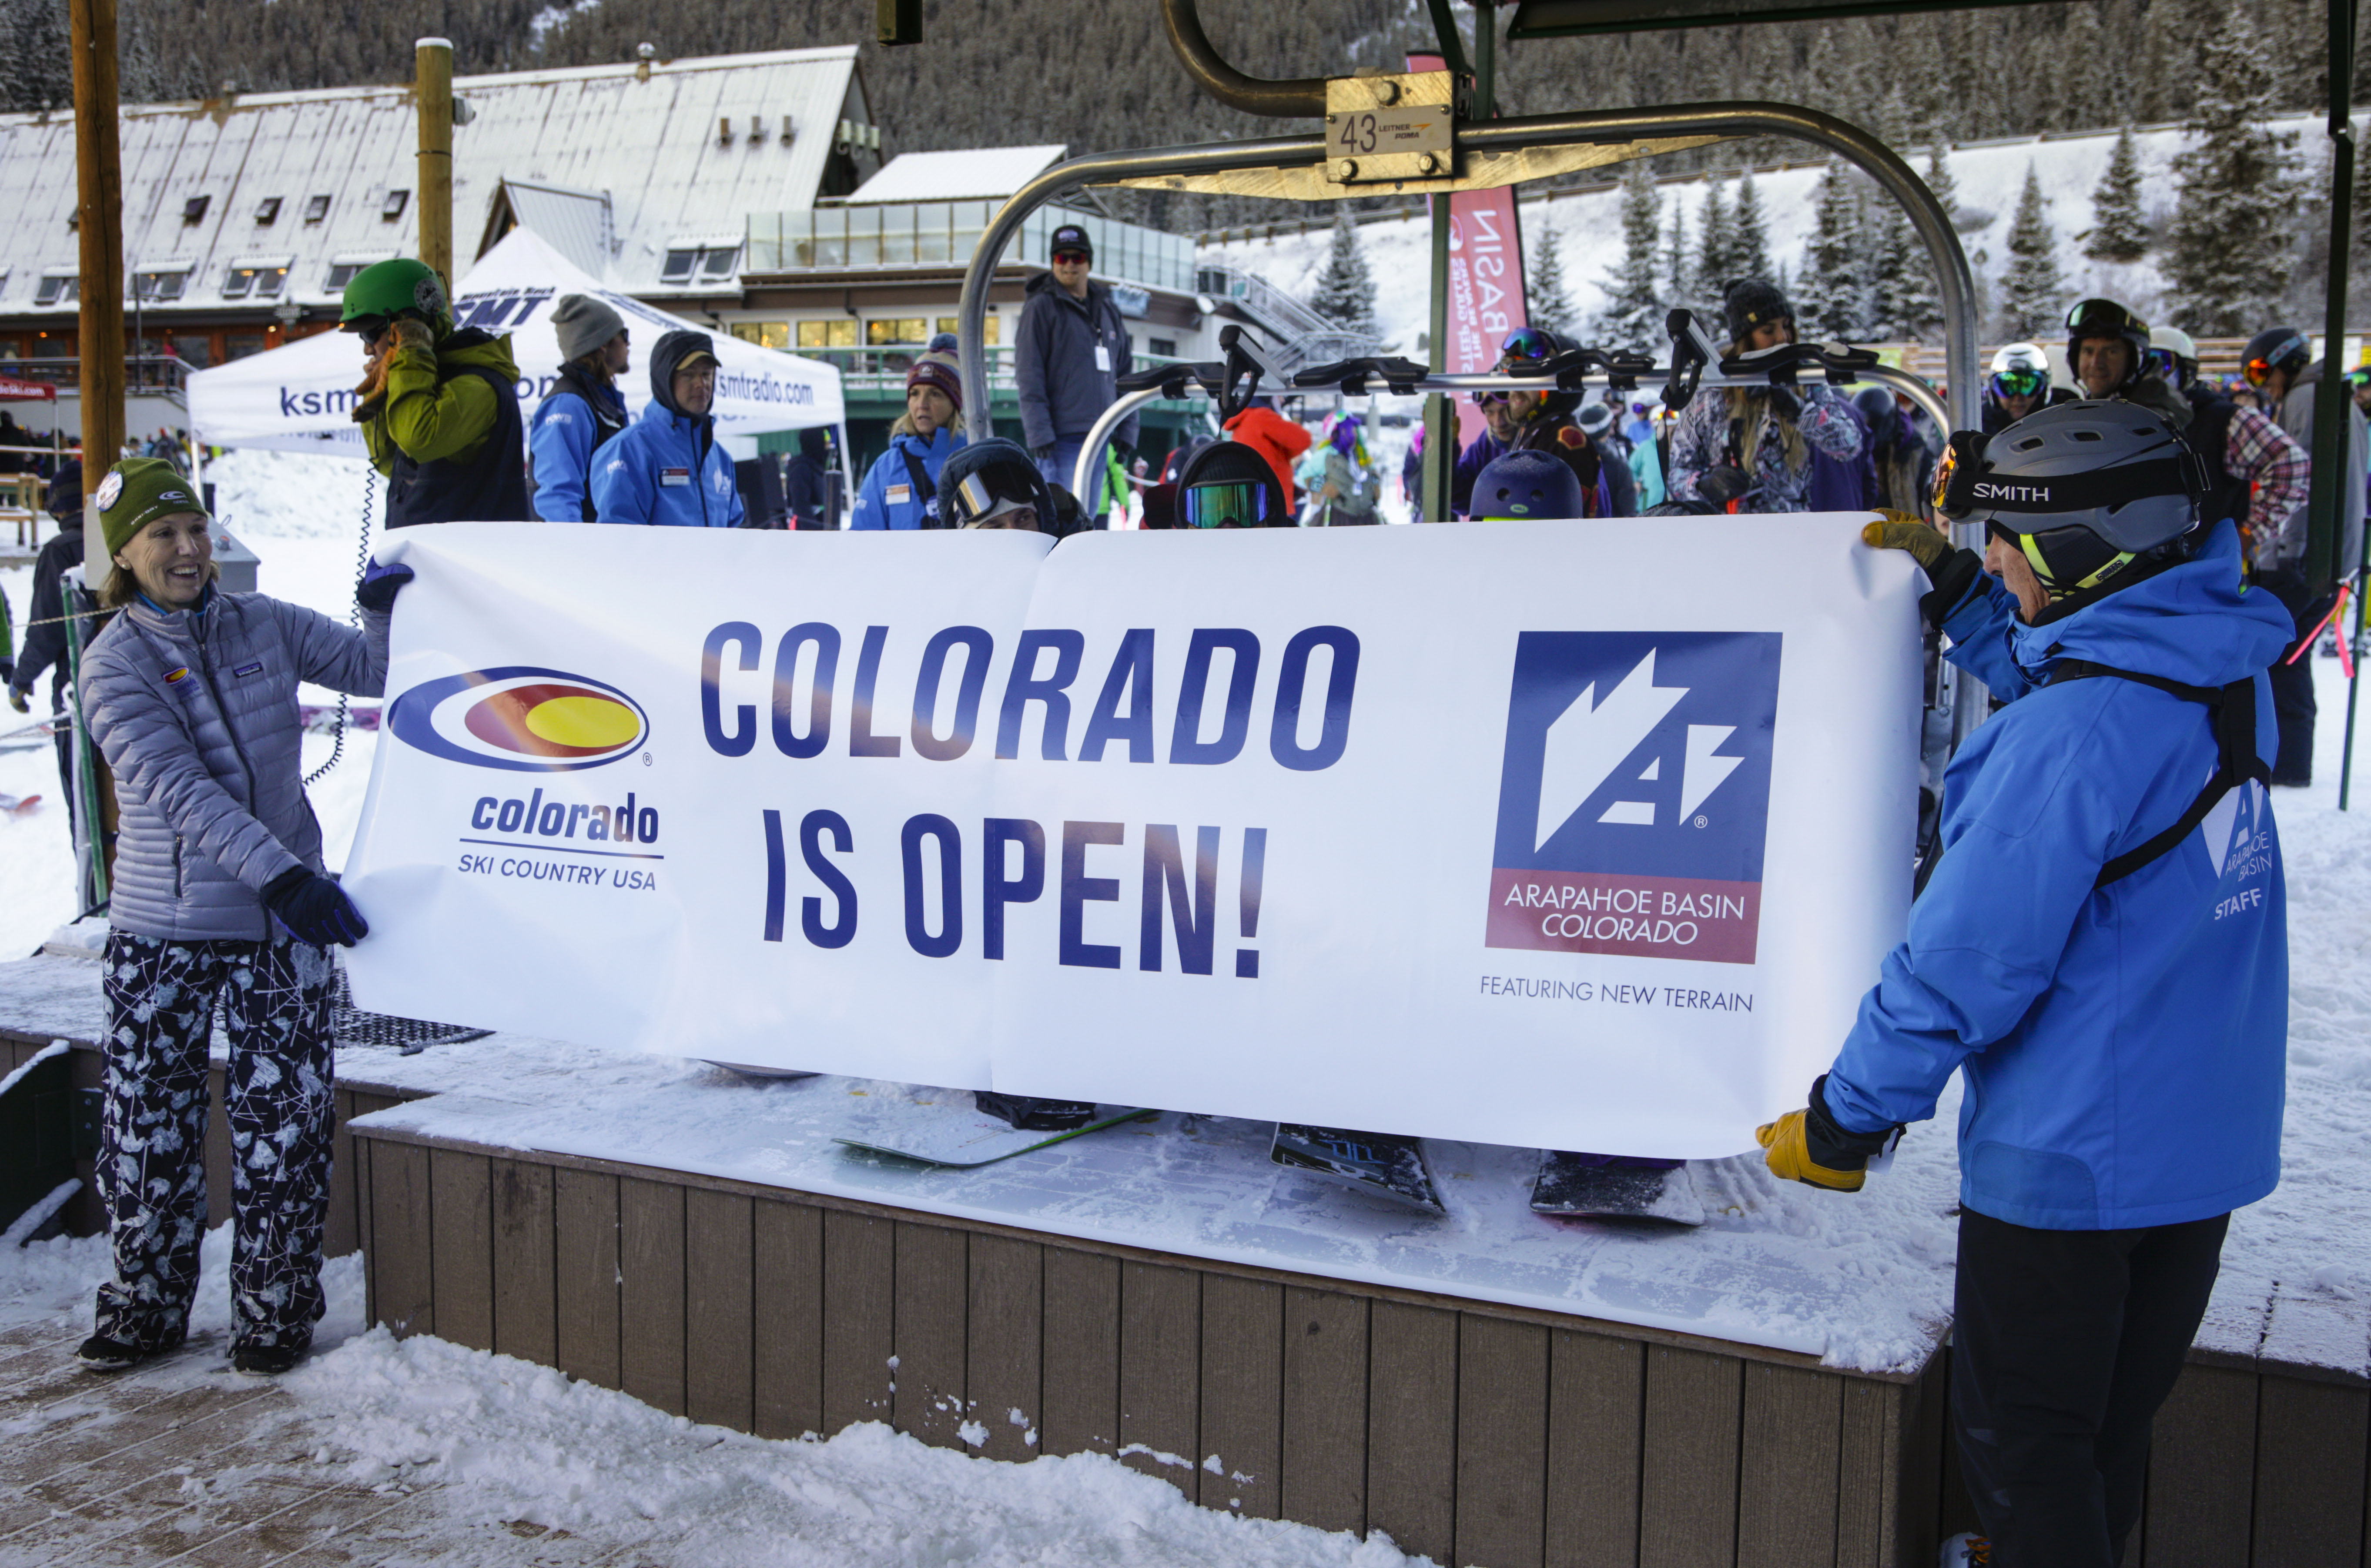 A-Basin Opening Day Banner Colorado Ski Country Jack Dempsey